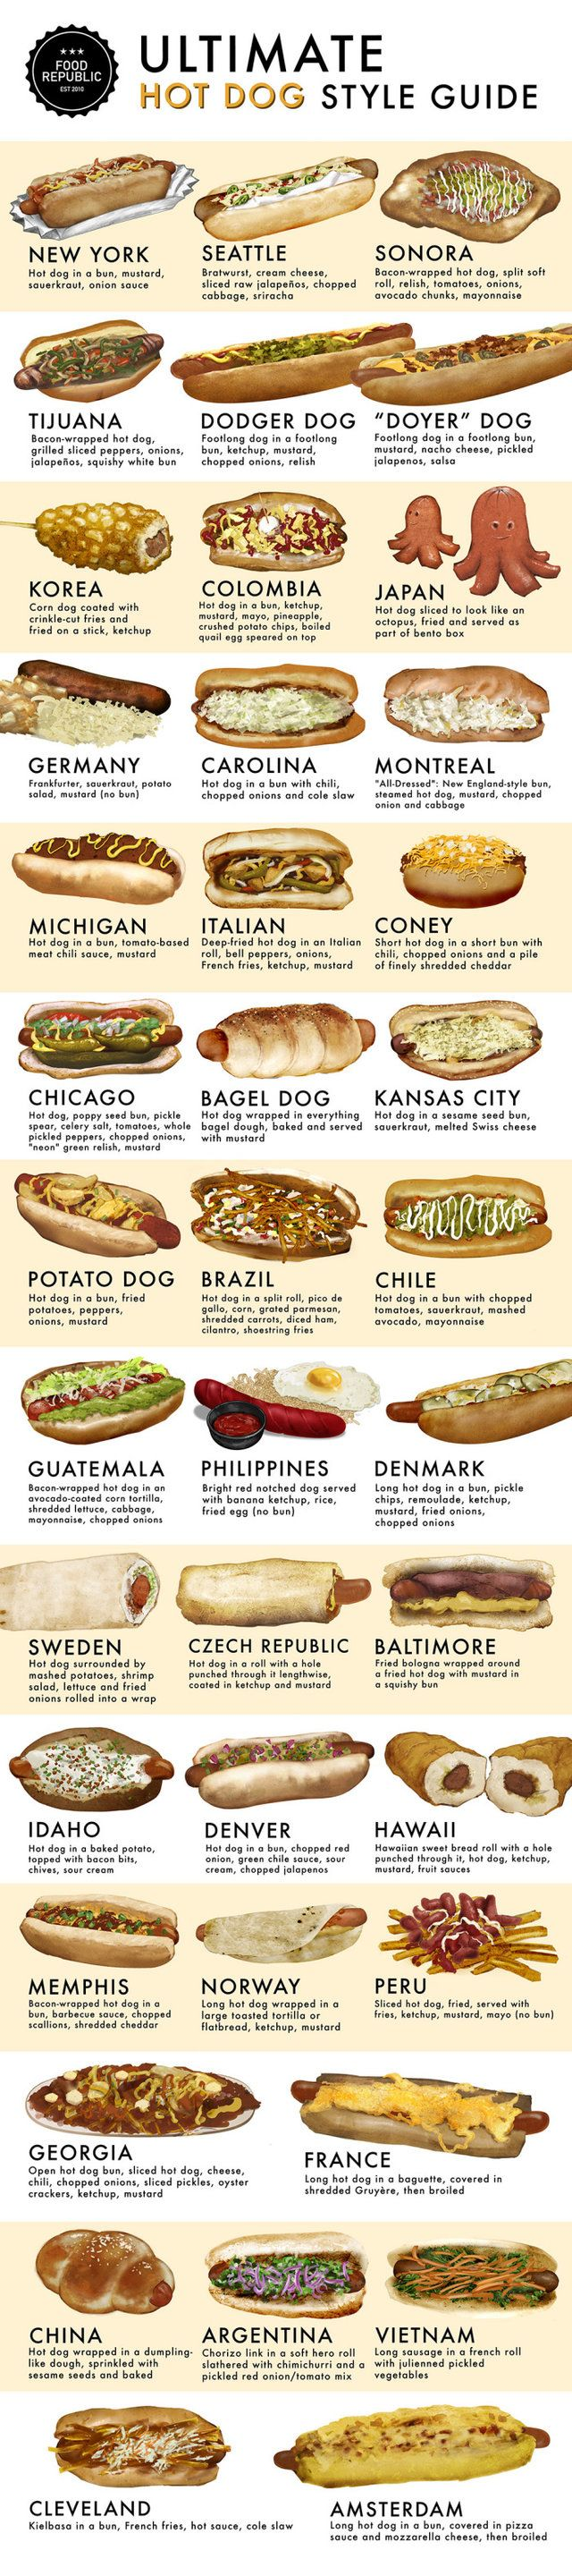 Ultimate Hot Dog Style Guide: Hot Dogs of the World